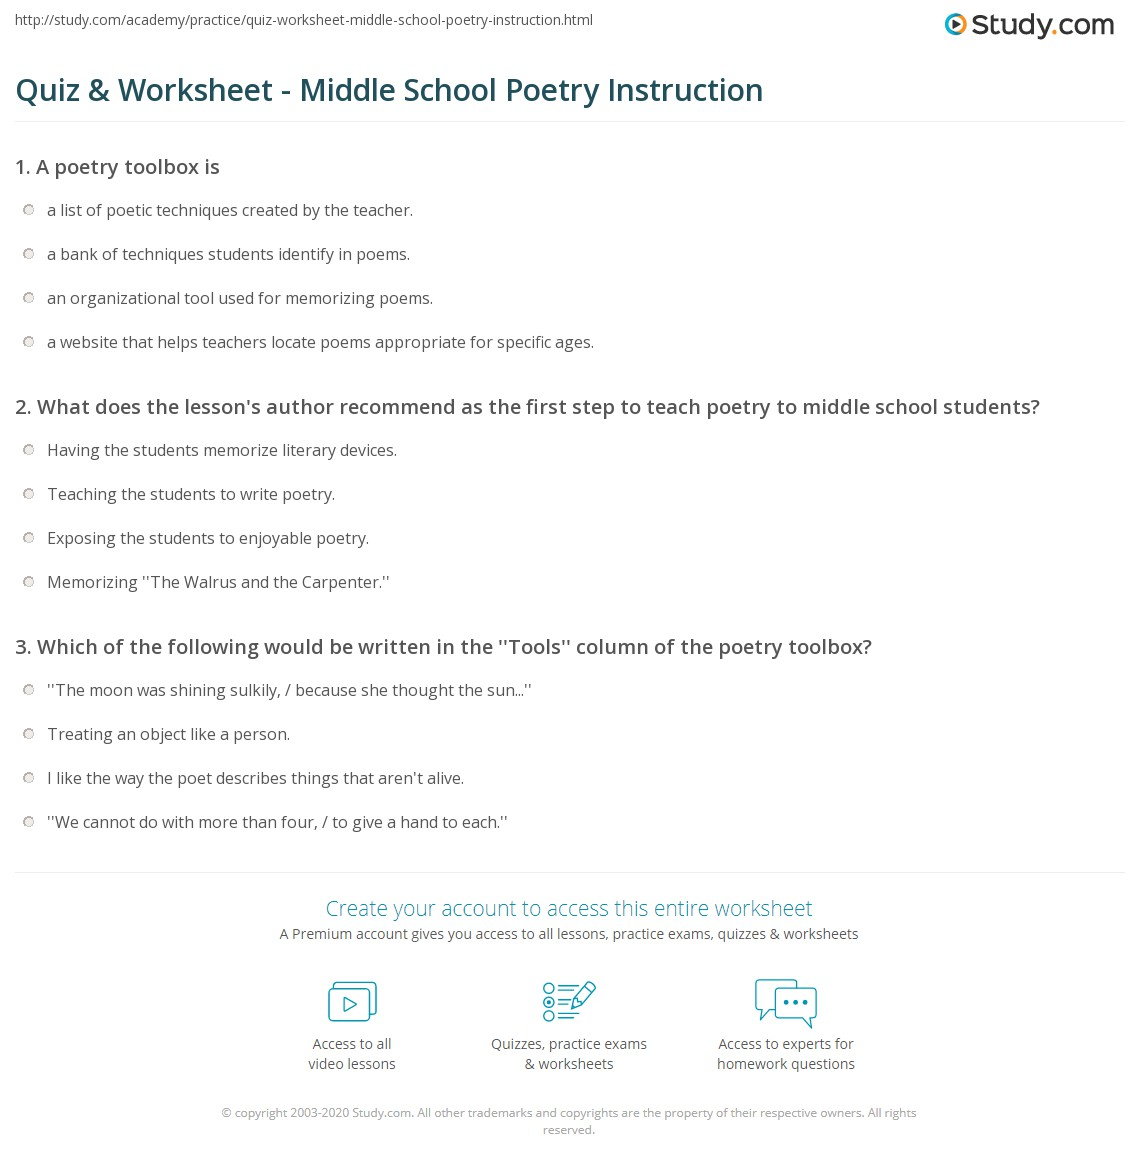 Quiz & Worksheet - Middle School Poetry Instruction | Study.com